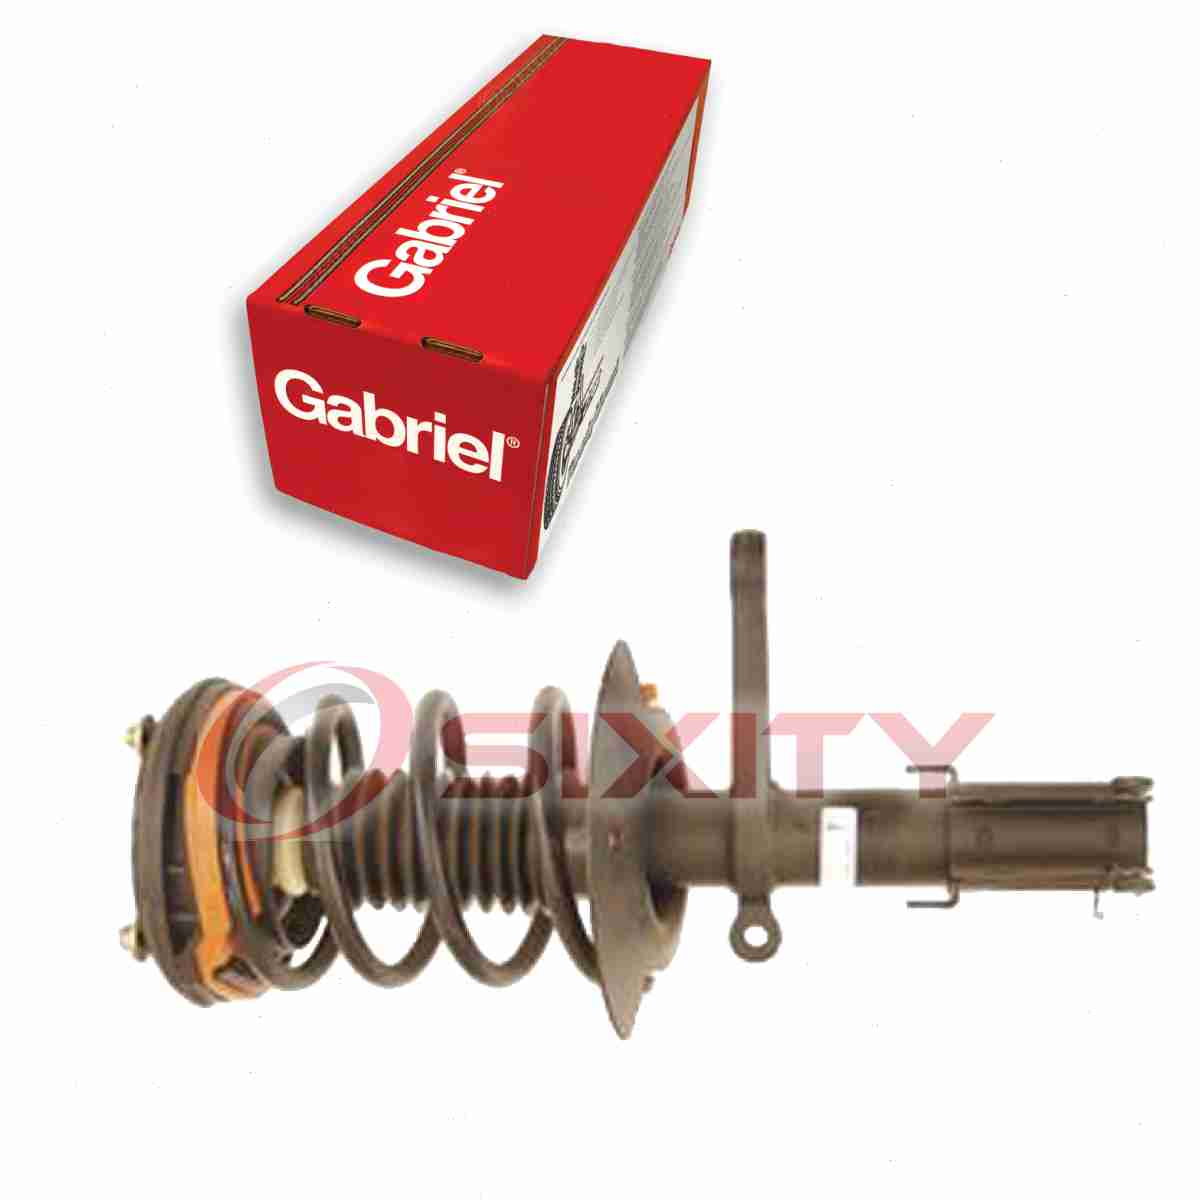 Gabriel Front Right Strut: Gabriel Front Right Fully Loaded Strut For 1998-2004